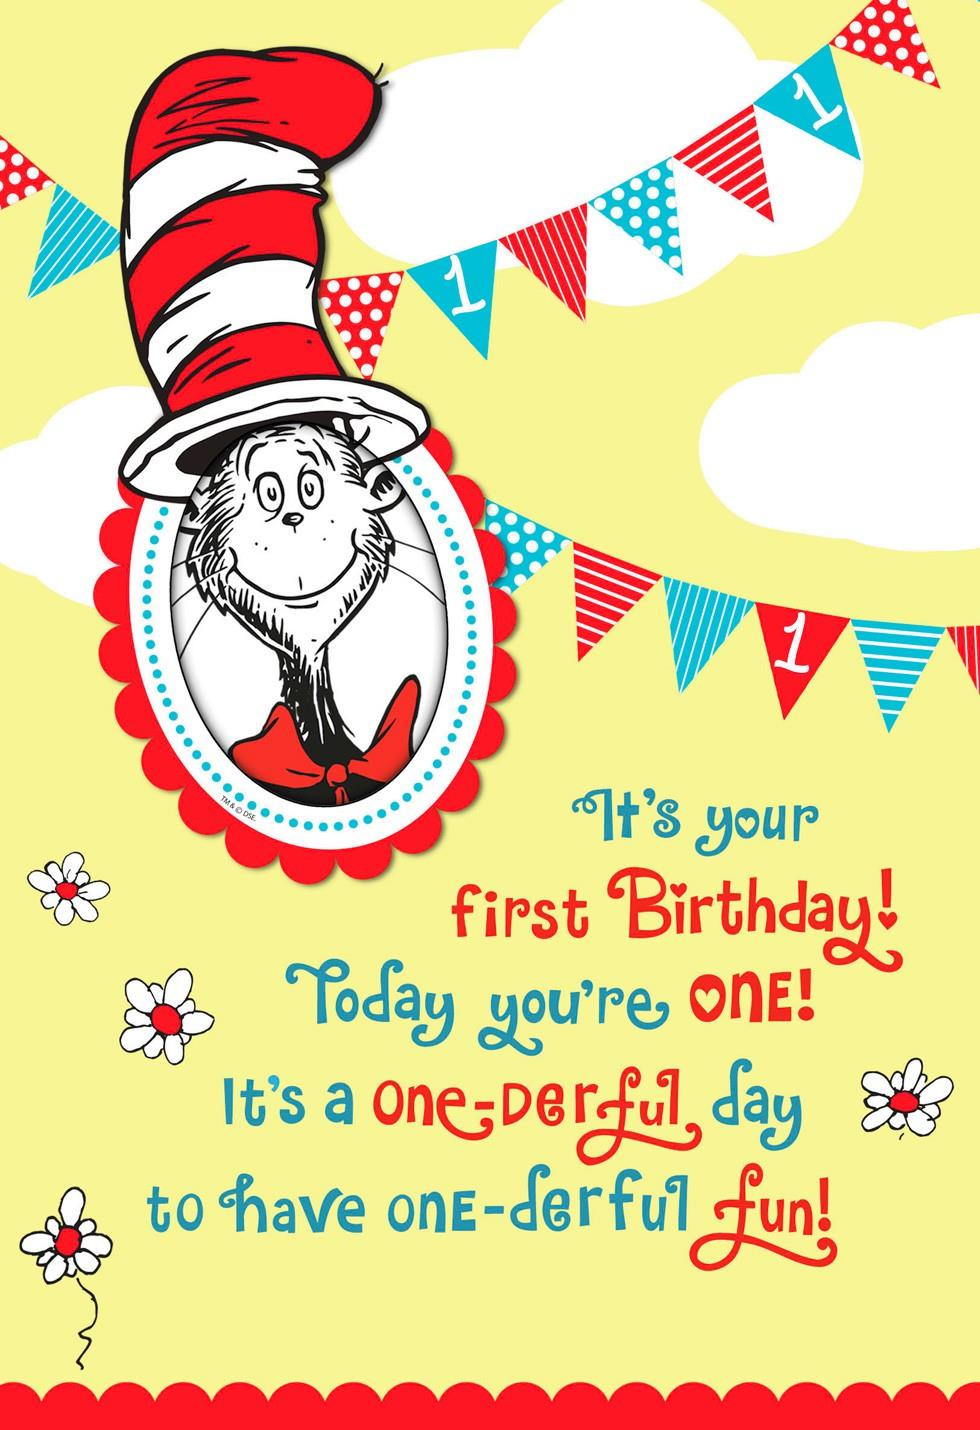 Dr Seuss Cat in the Hat 1st Birthday Card With Photo Holder – Dr Seuss Birthday Card